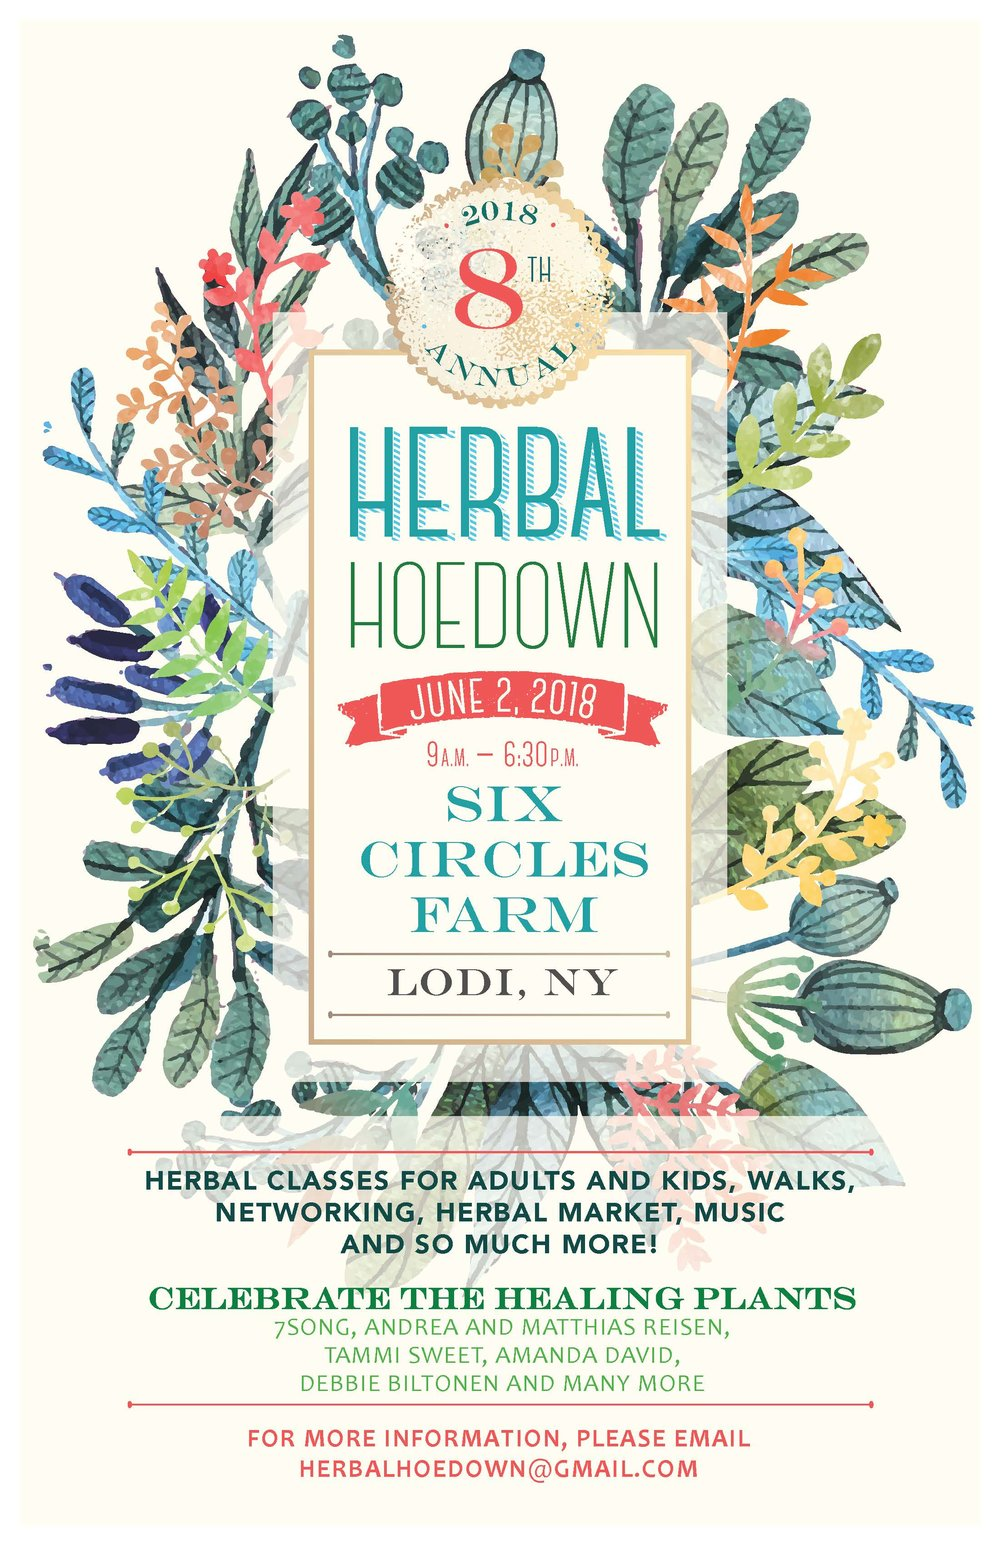 Join Wild Gather June 2nd! - We'll be teaching a workshop entitled,INVASIVES : Plants, Boundaries and MedicineFor the full lineup and all the details on this great one day Herbal event, visit https://m.facebook.com/events/1987189561609025and to register for the day, visit https://docs.google.com/forms/d/e/1FAIpQLSfX_ADx86kfEGRMYNktjhOGDVvHwYHfpTSURCowgZ-uOywdKA/viewform